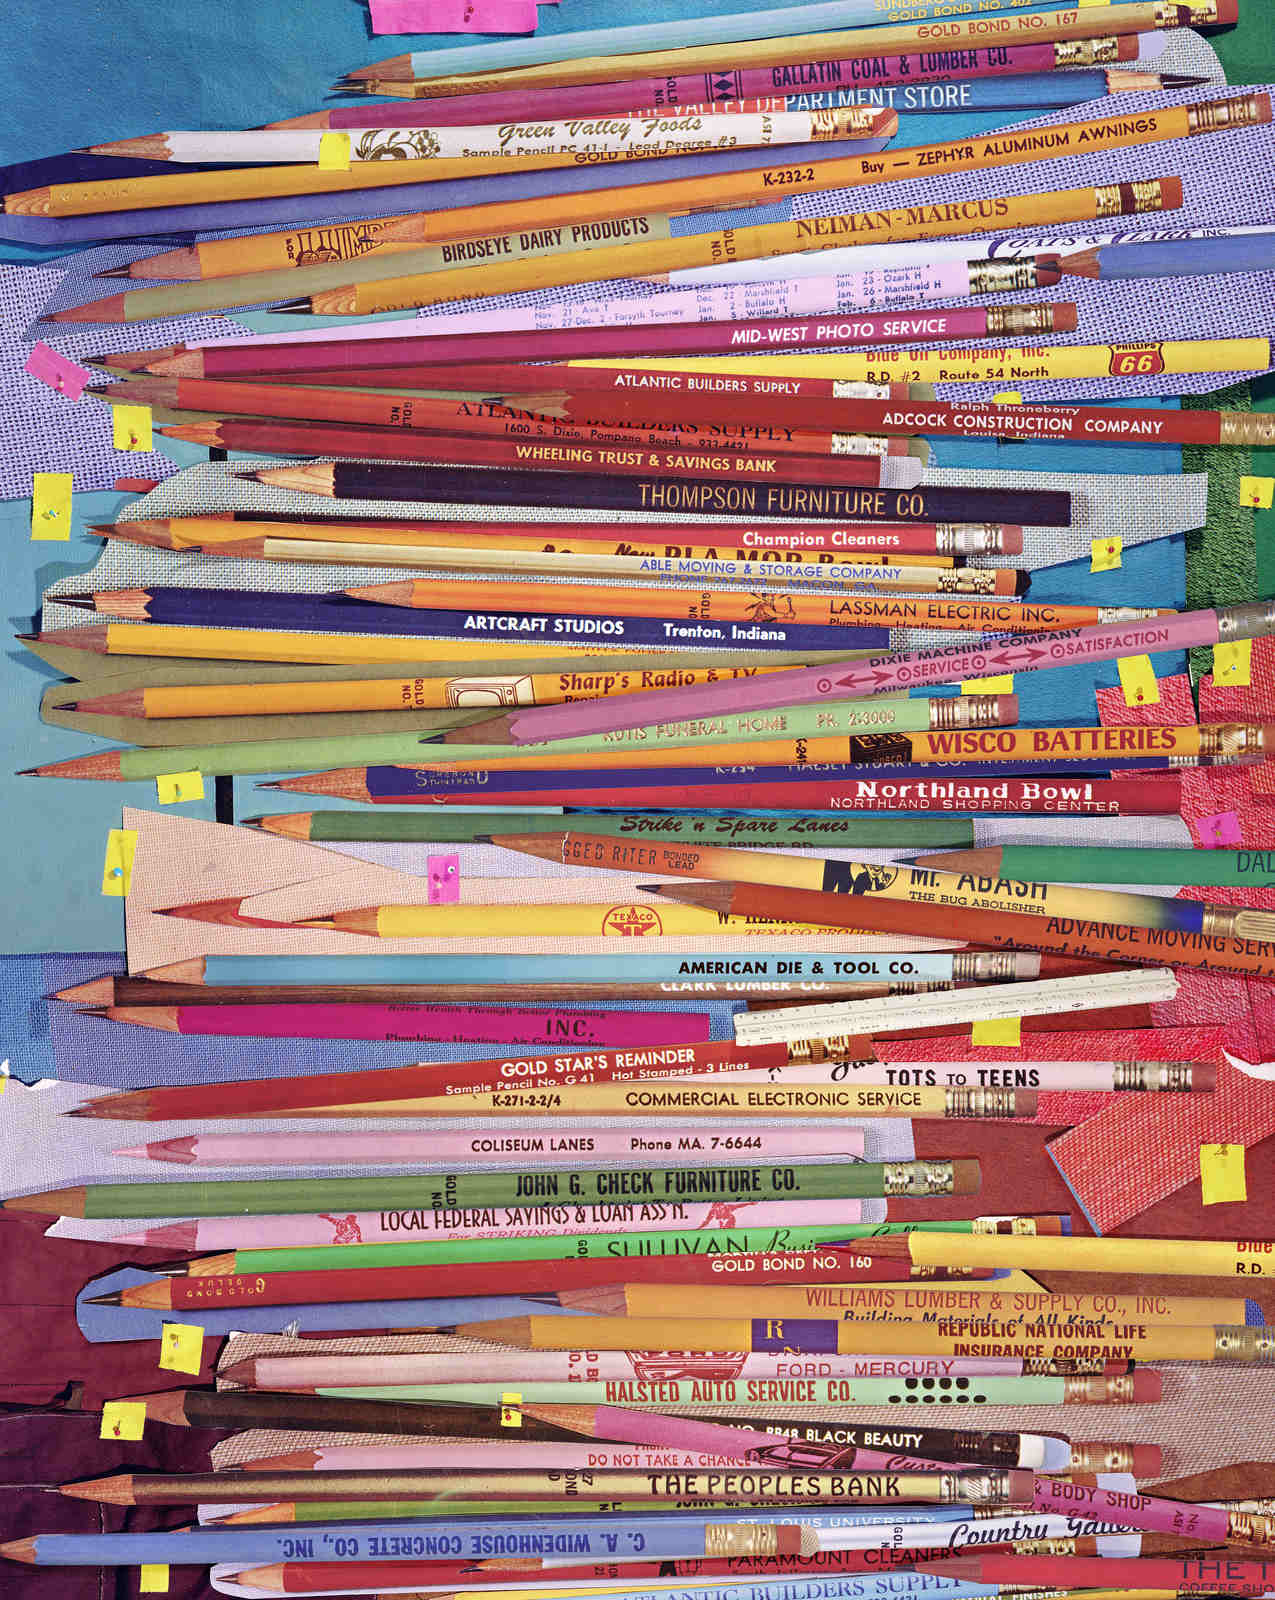 CC_Sara_Cwynar_Pictures of Pencils II